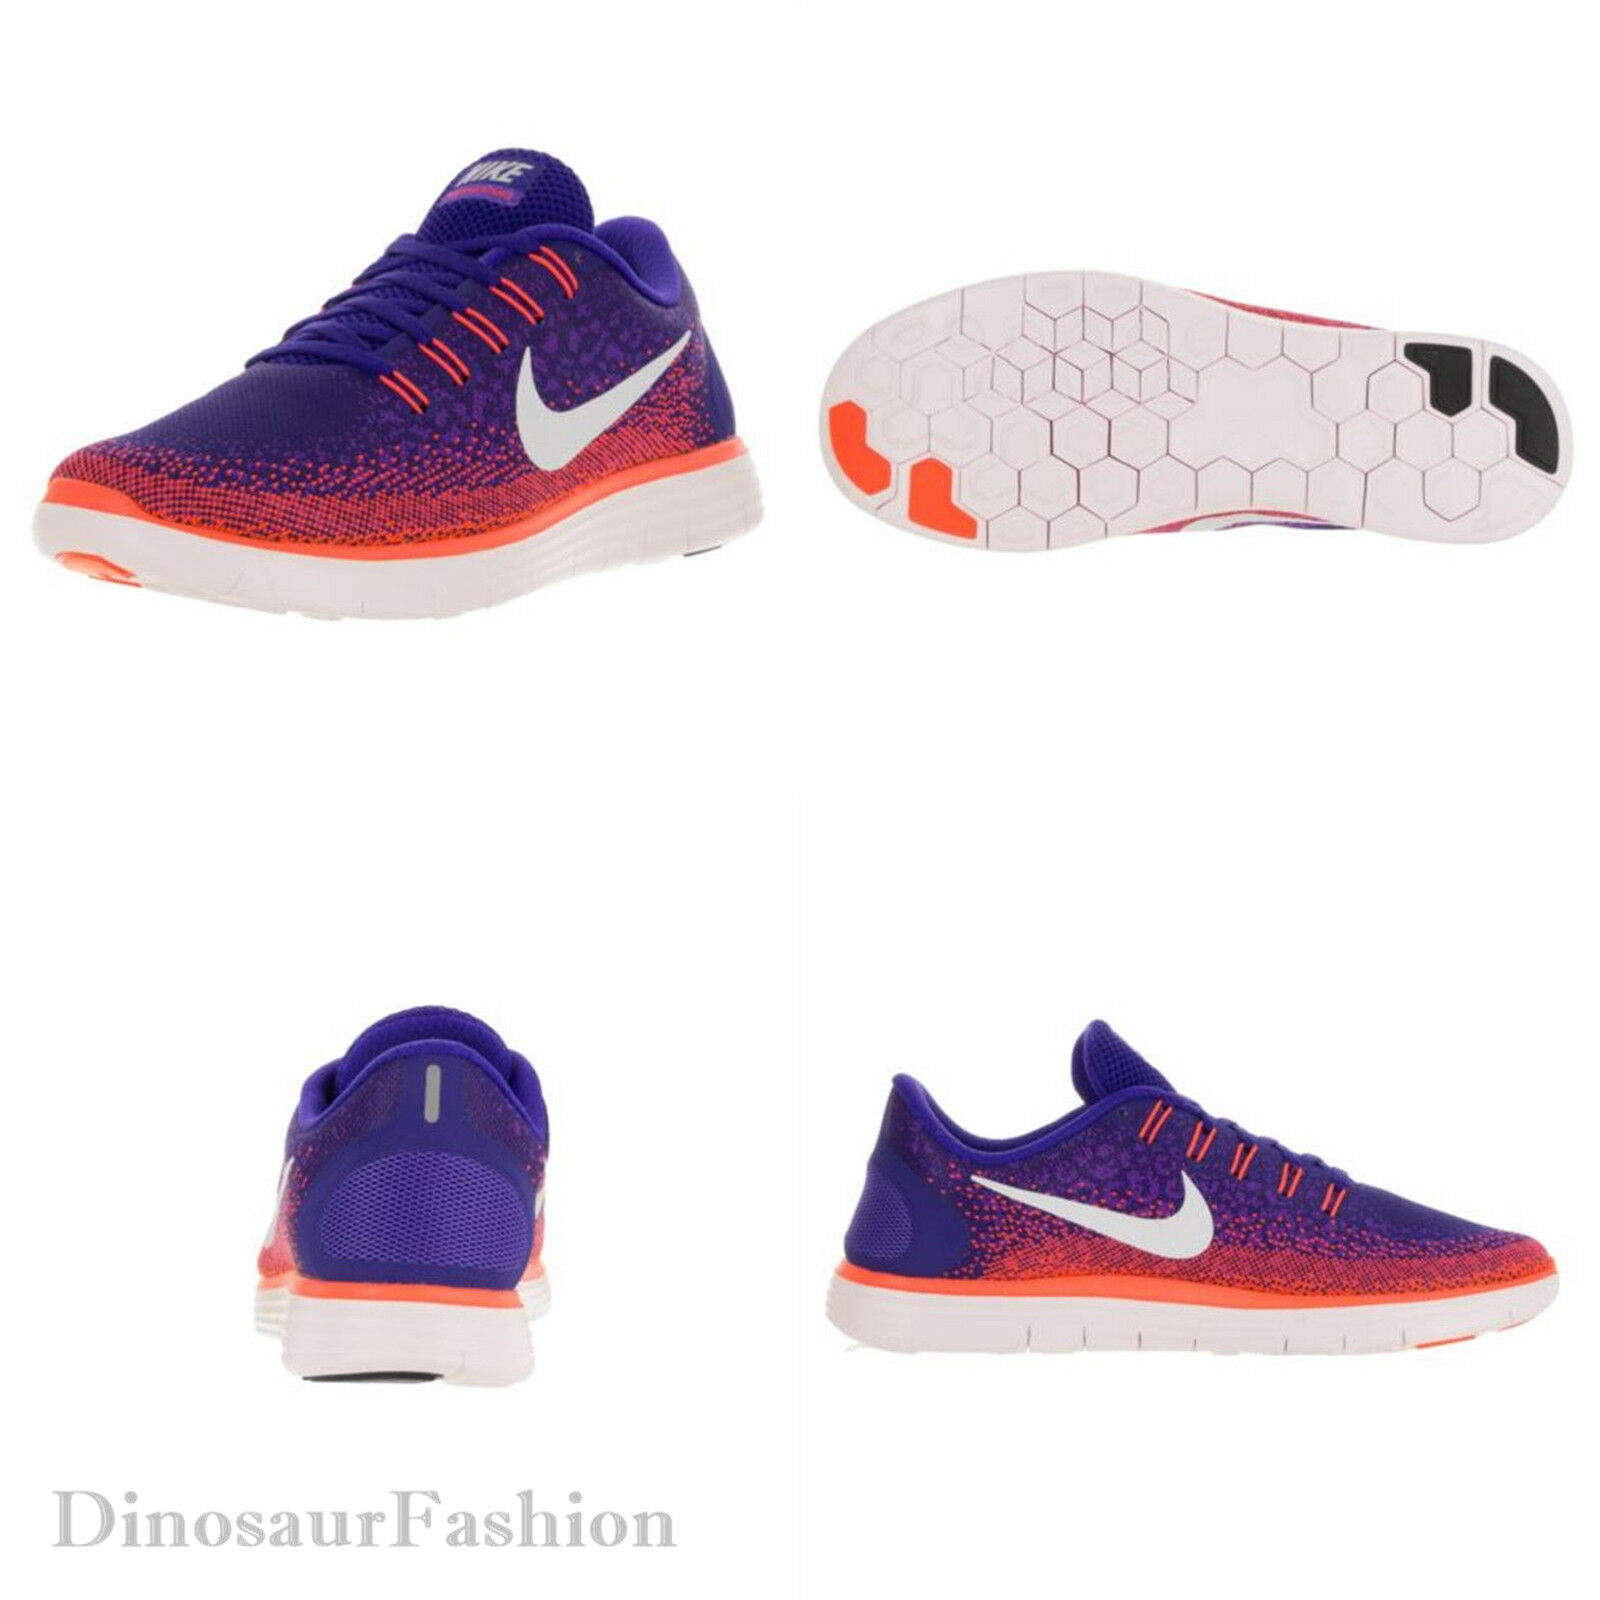 bb48f969ad87 NIKE NIKE NIKE Men S FREE RN DISTANCE (827115 - 402) Running Shoes ...